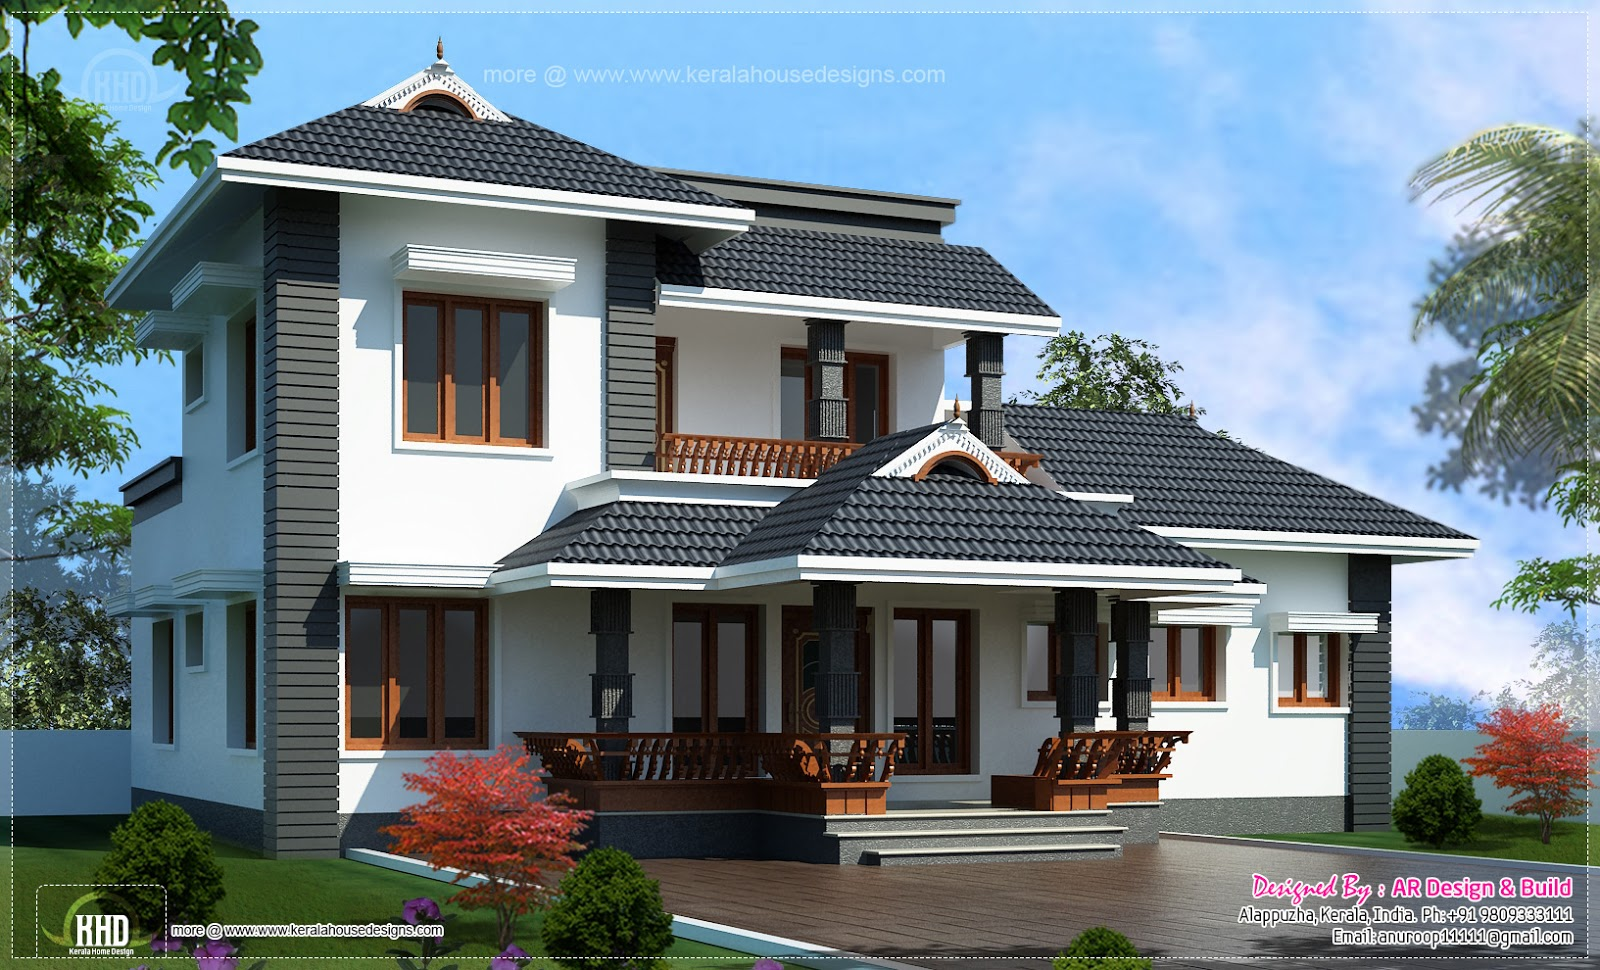 2000 4 bedroom sloping roof residence kerala In home design